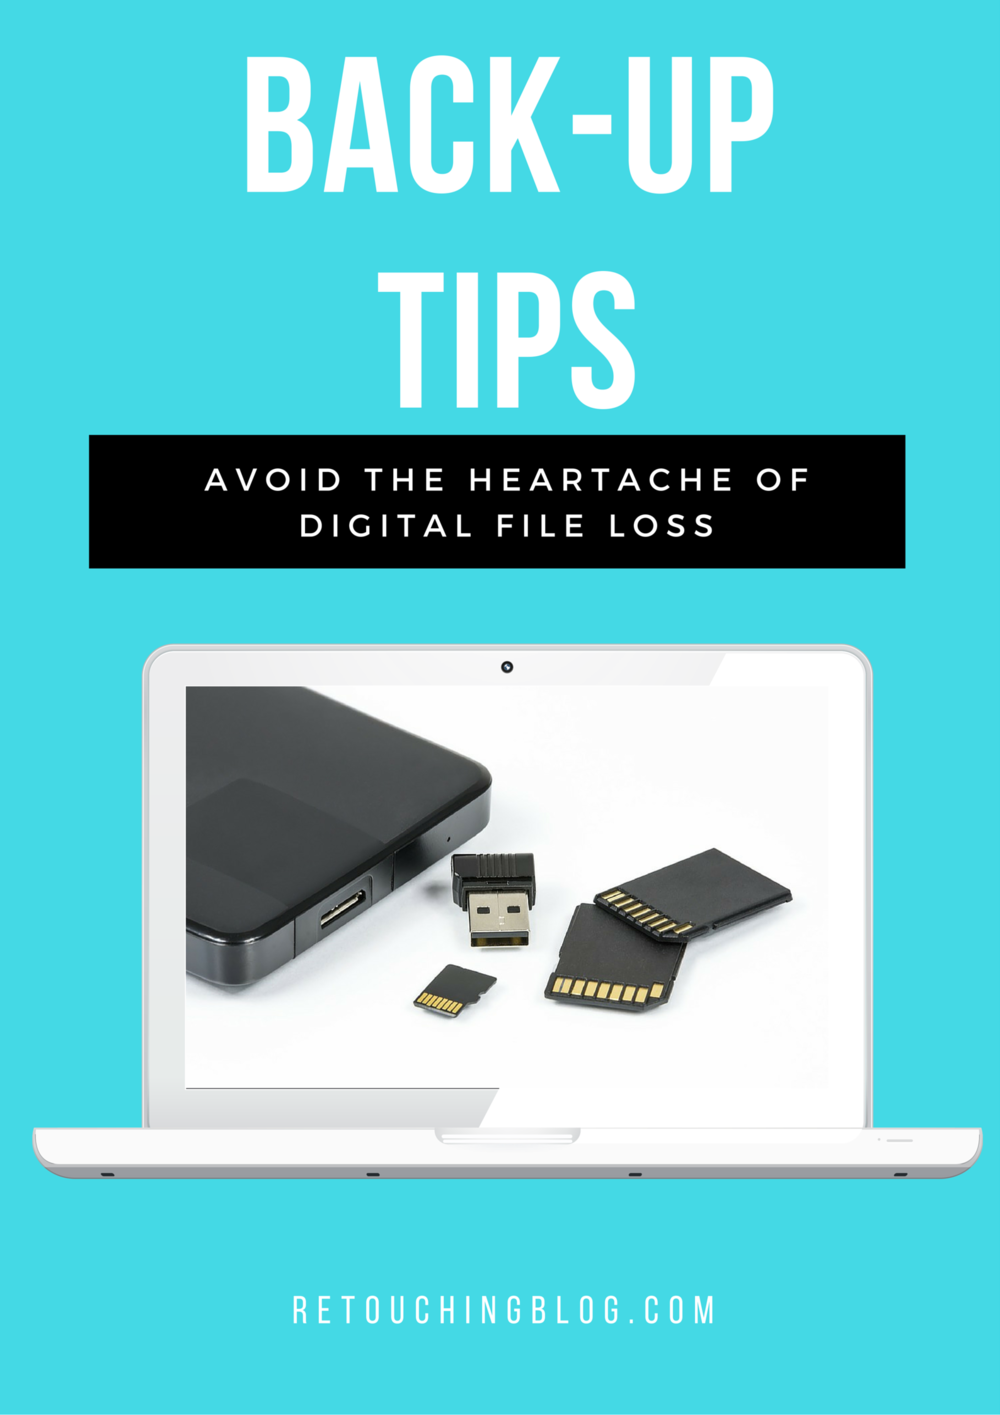 Avoid The Heartache of Digital File Loss With These Back-Up Tips | Retouchingblog.com